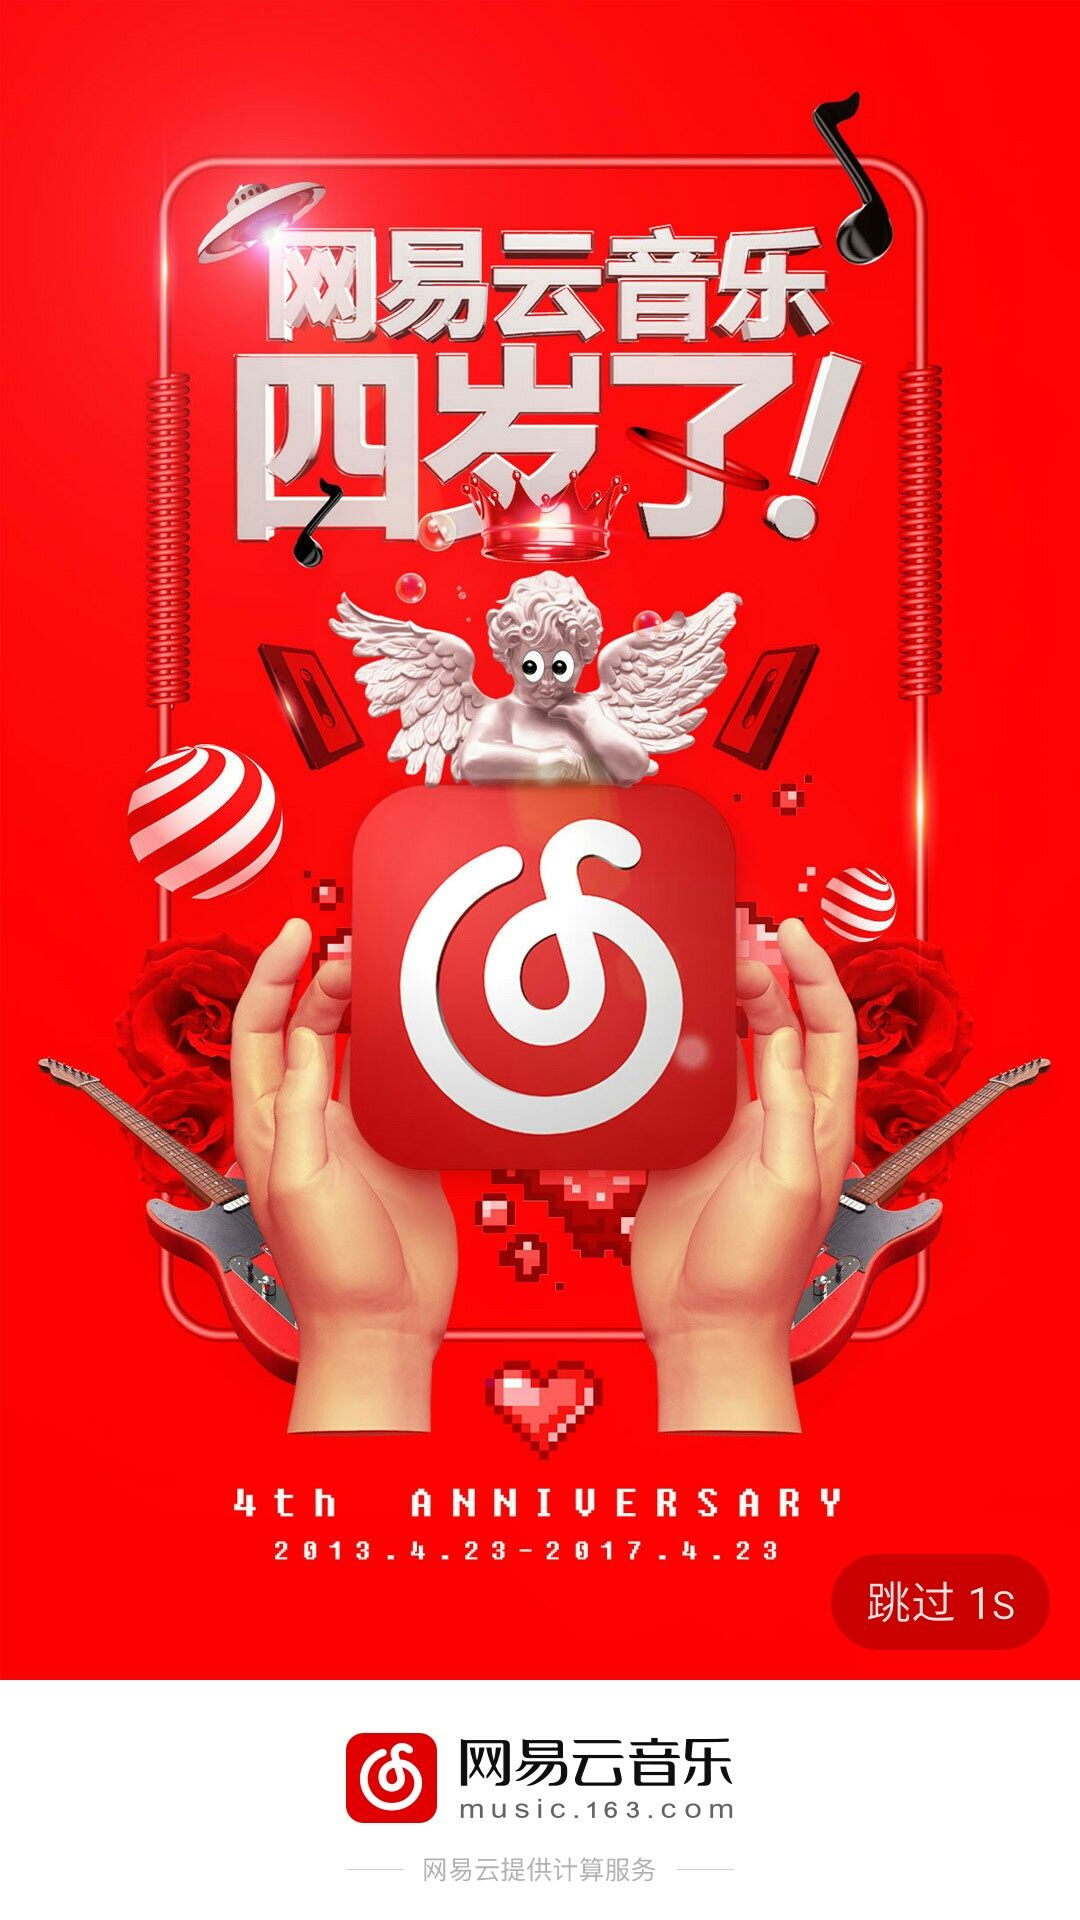 Pin by lz lz on 3D应用活动 Web design, Banner, Poster